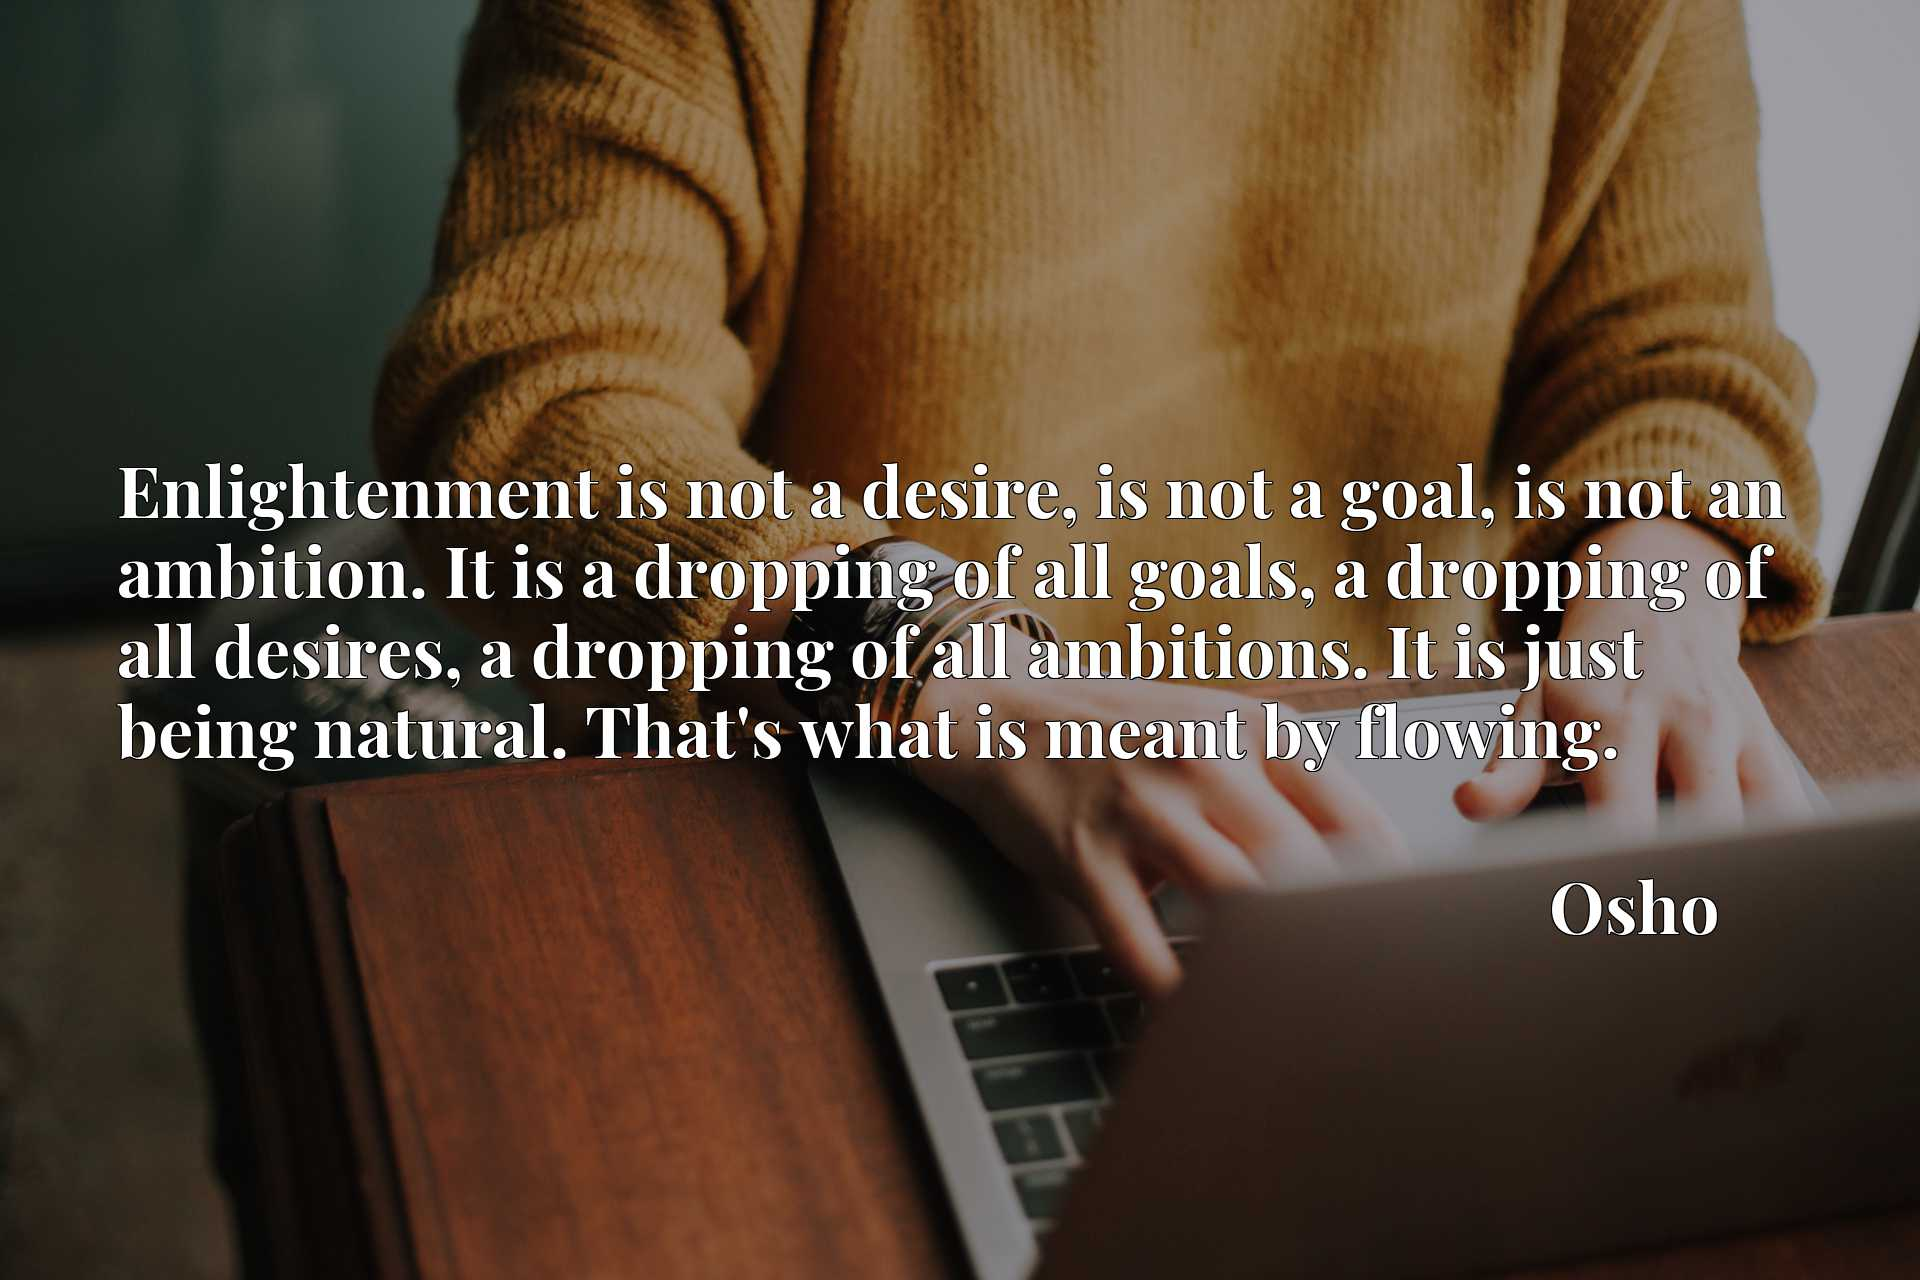 Enlightenment is not a desire, is not a goal, is not an ambition. It is a dropping of all goals, a dropping of all desires, a dropping of all ambitions. It is just being natural. That's what is meant by flowing.